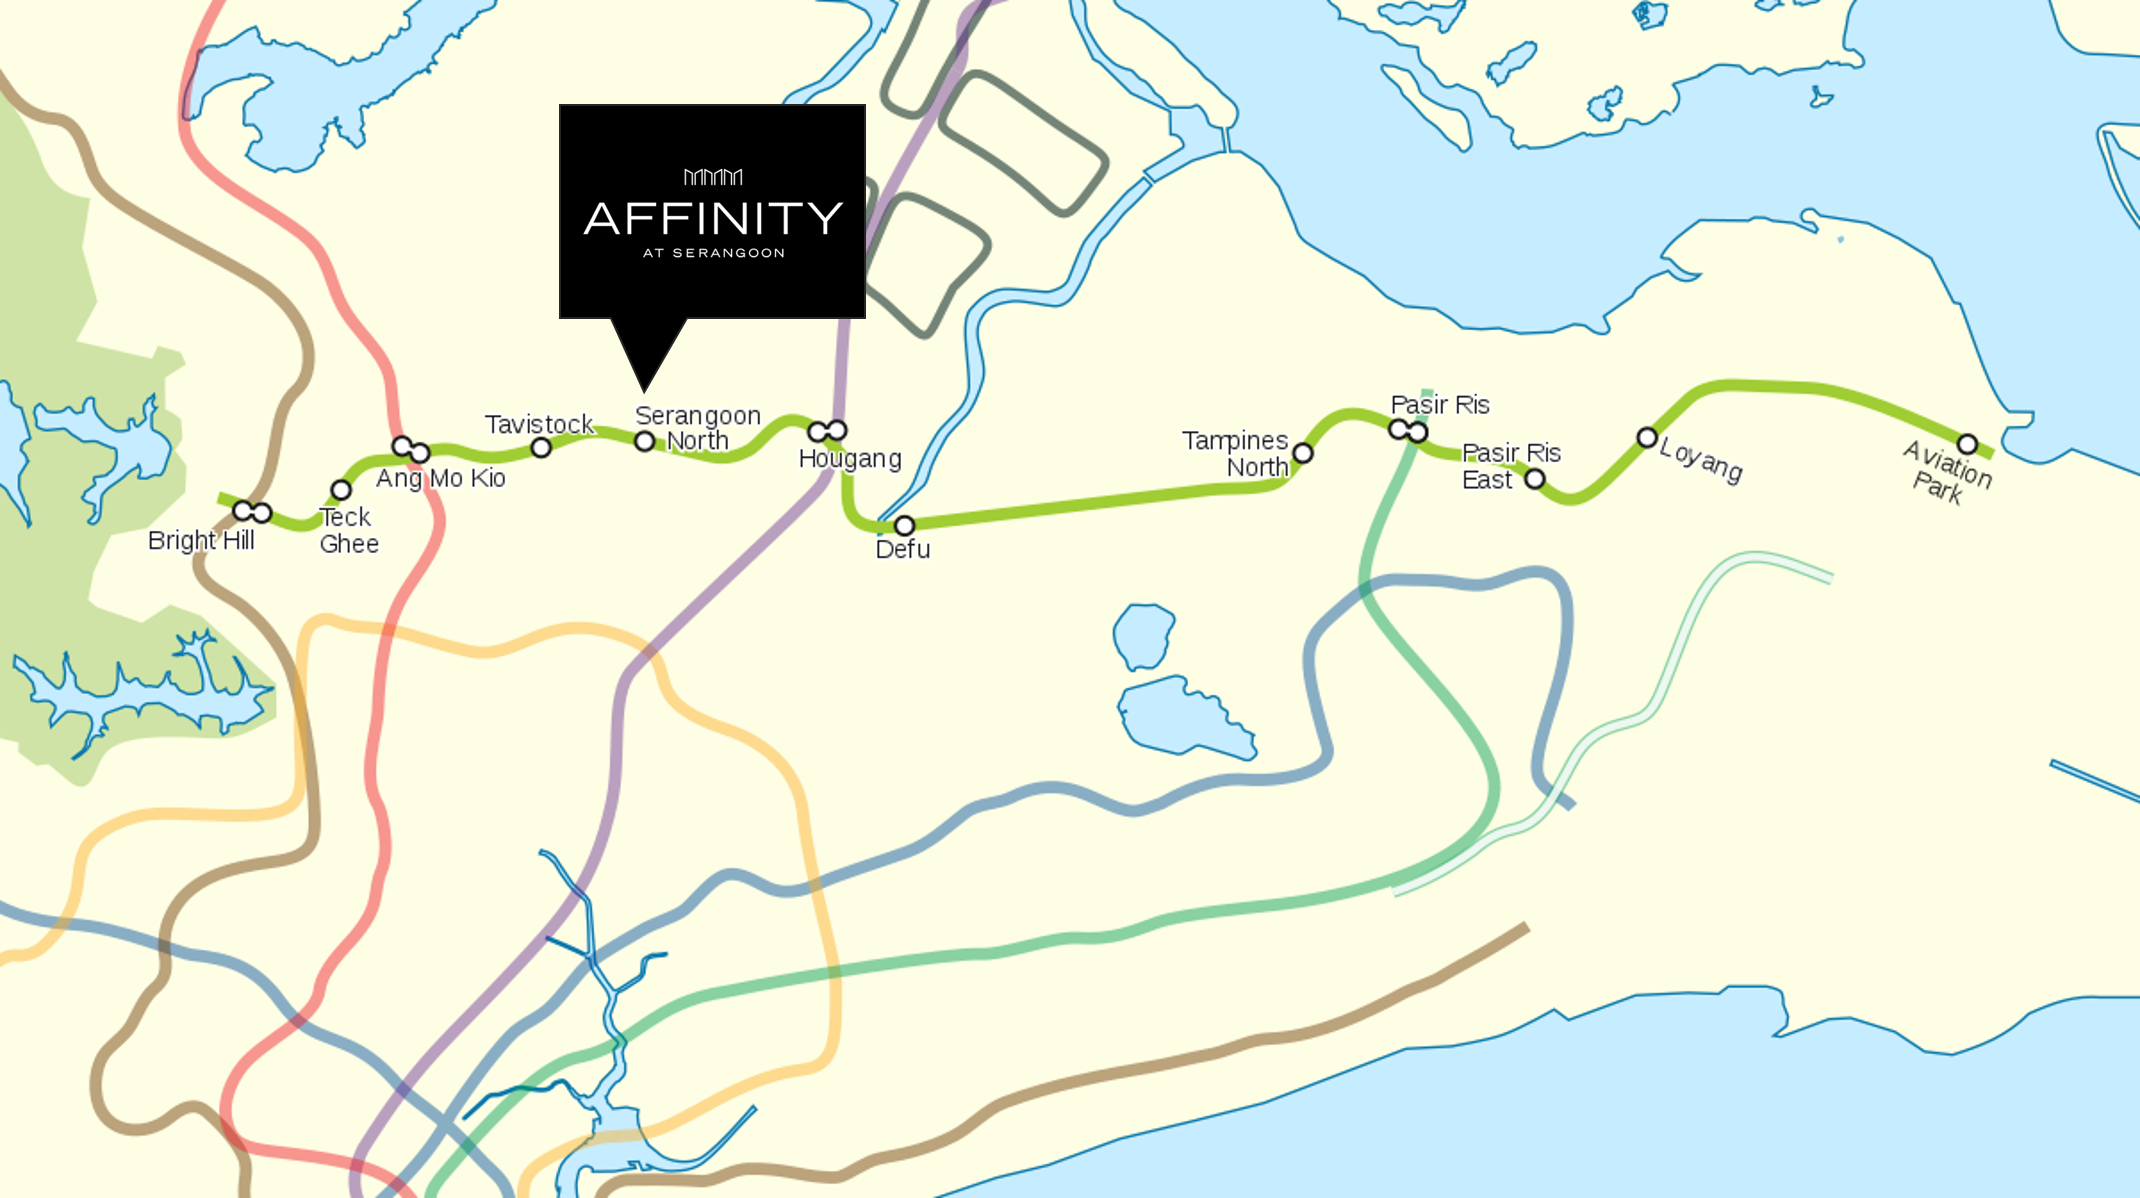 Affinity CIL